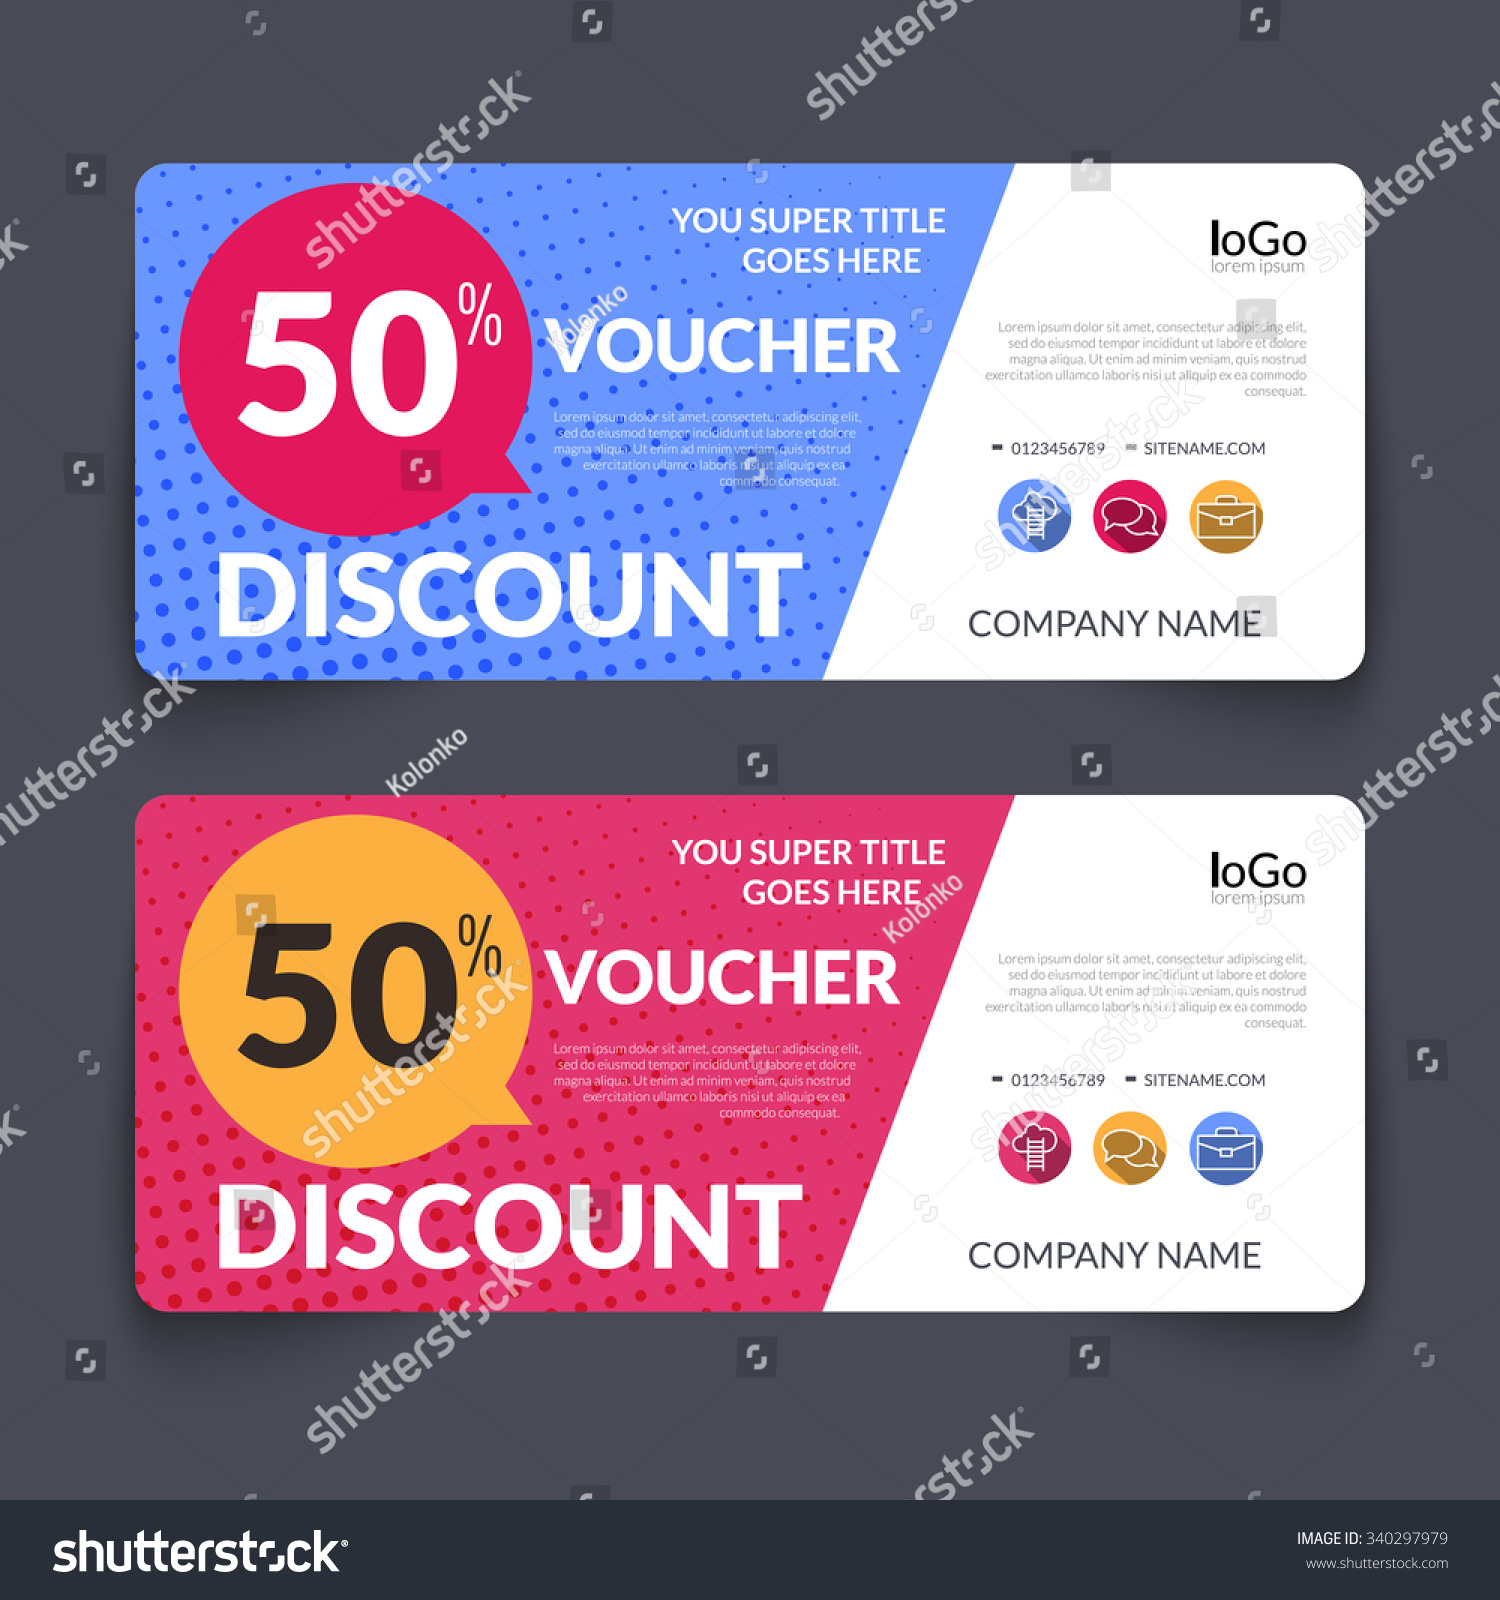 discount voucher market design template colorful stock vector discount voucher market design template colorful halftone pattern gift voucher certificate coupon template layout